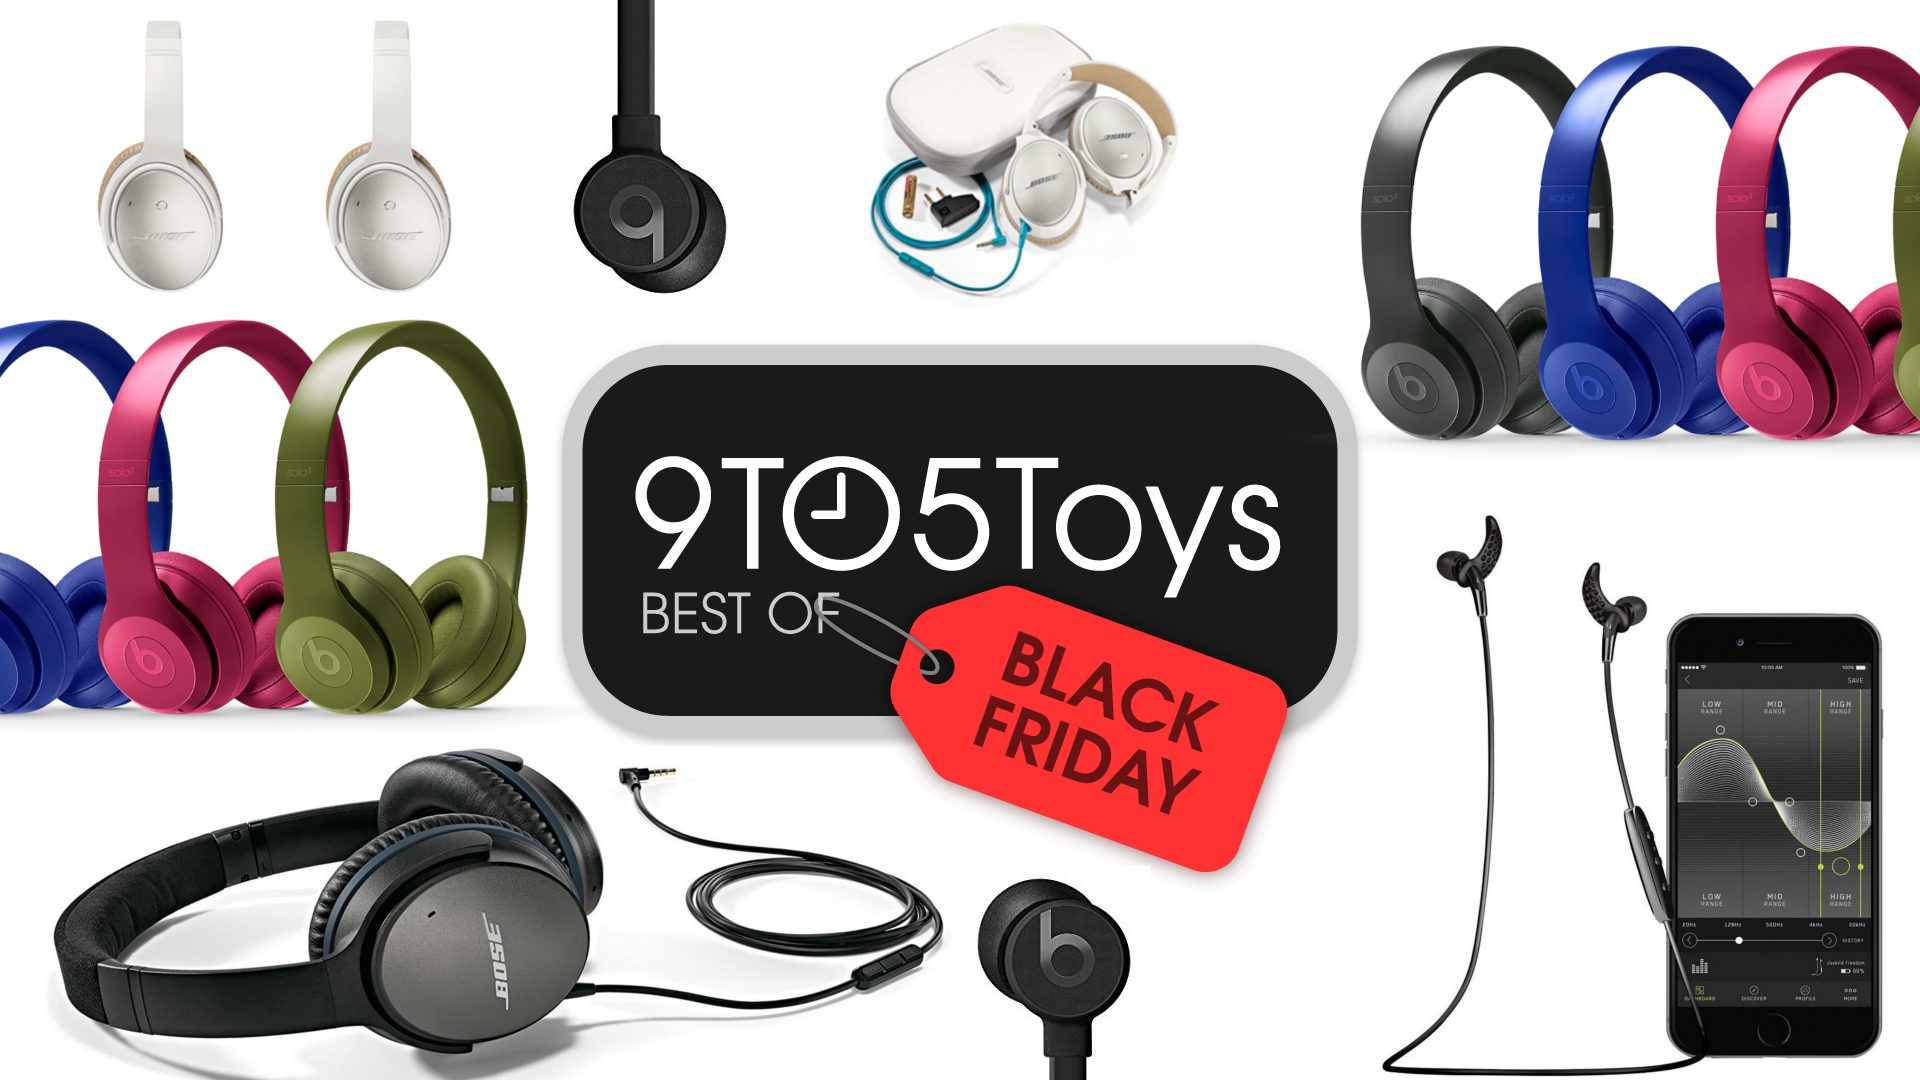 a673eca22ea Best of Black Friday 2017 – Headphones: Bose QuietComfort 25 $179, Beats  from $100, more - 9to5Toys